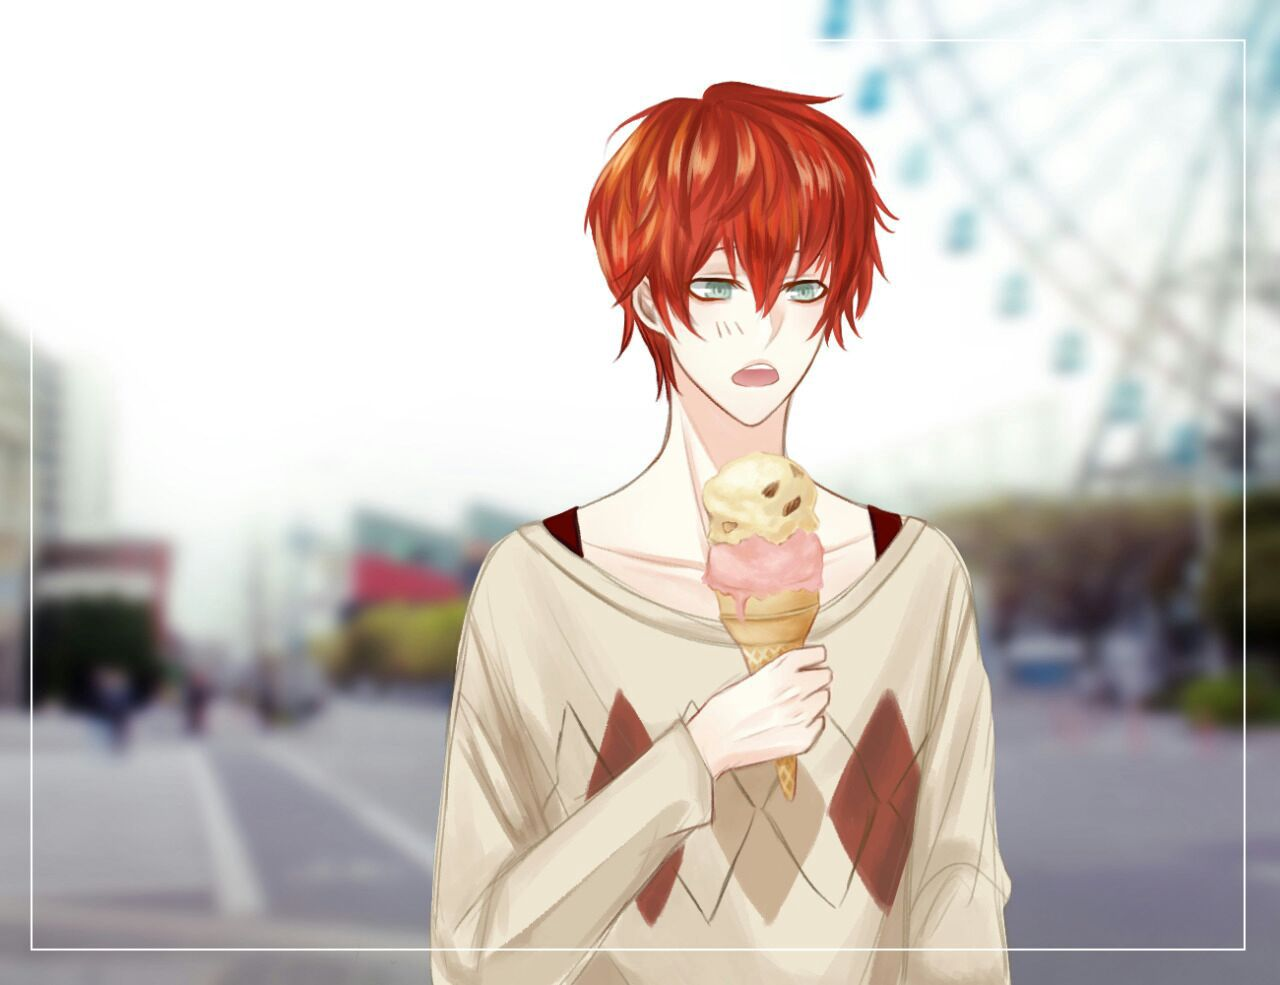 Yandere Saeran X Reader I Want You 9 You Need To Calm